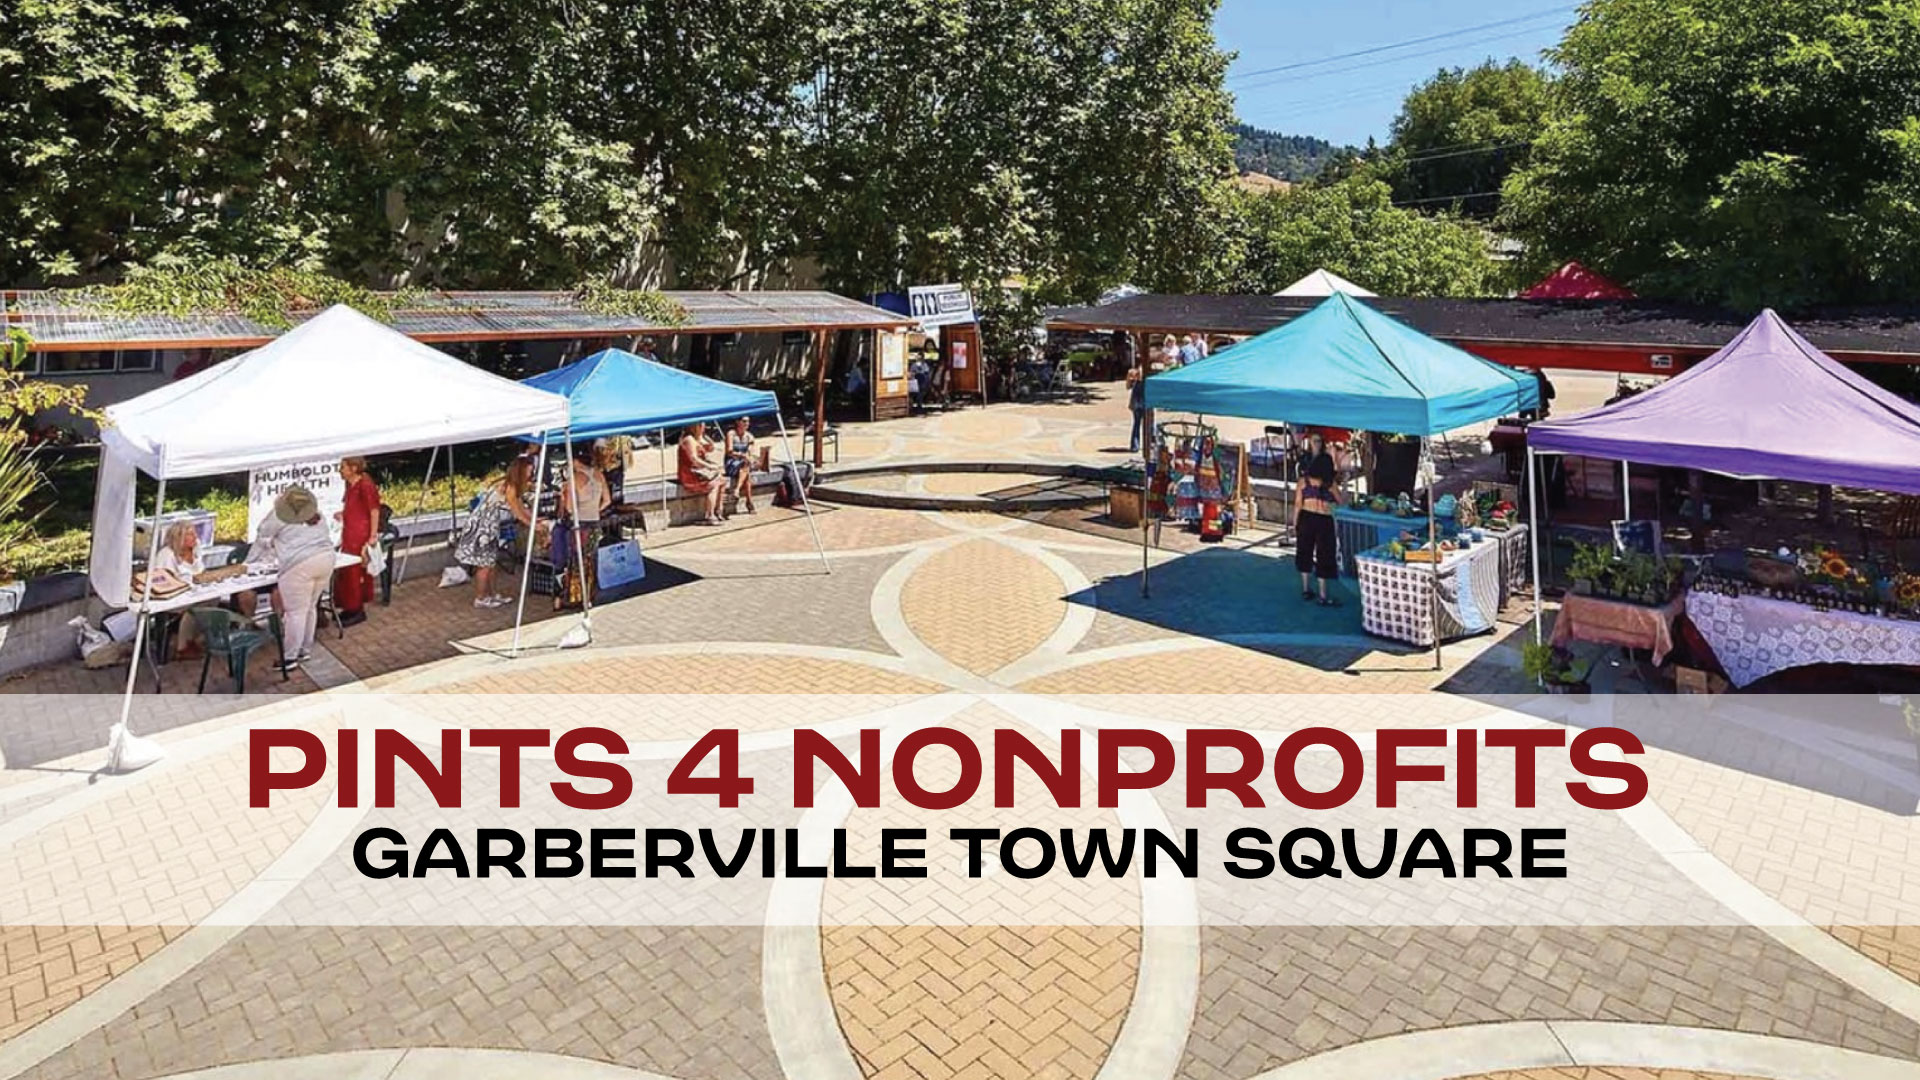 p4np-garberville-town-square